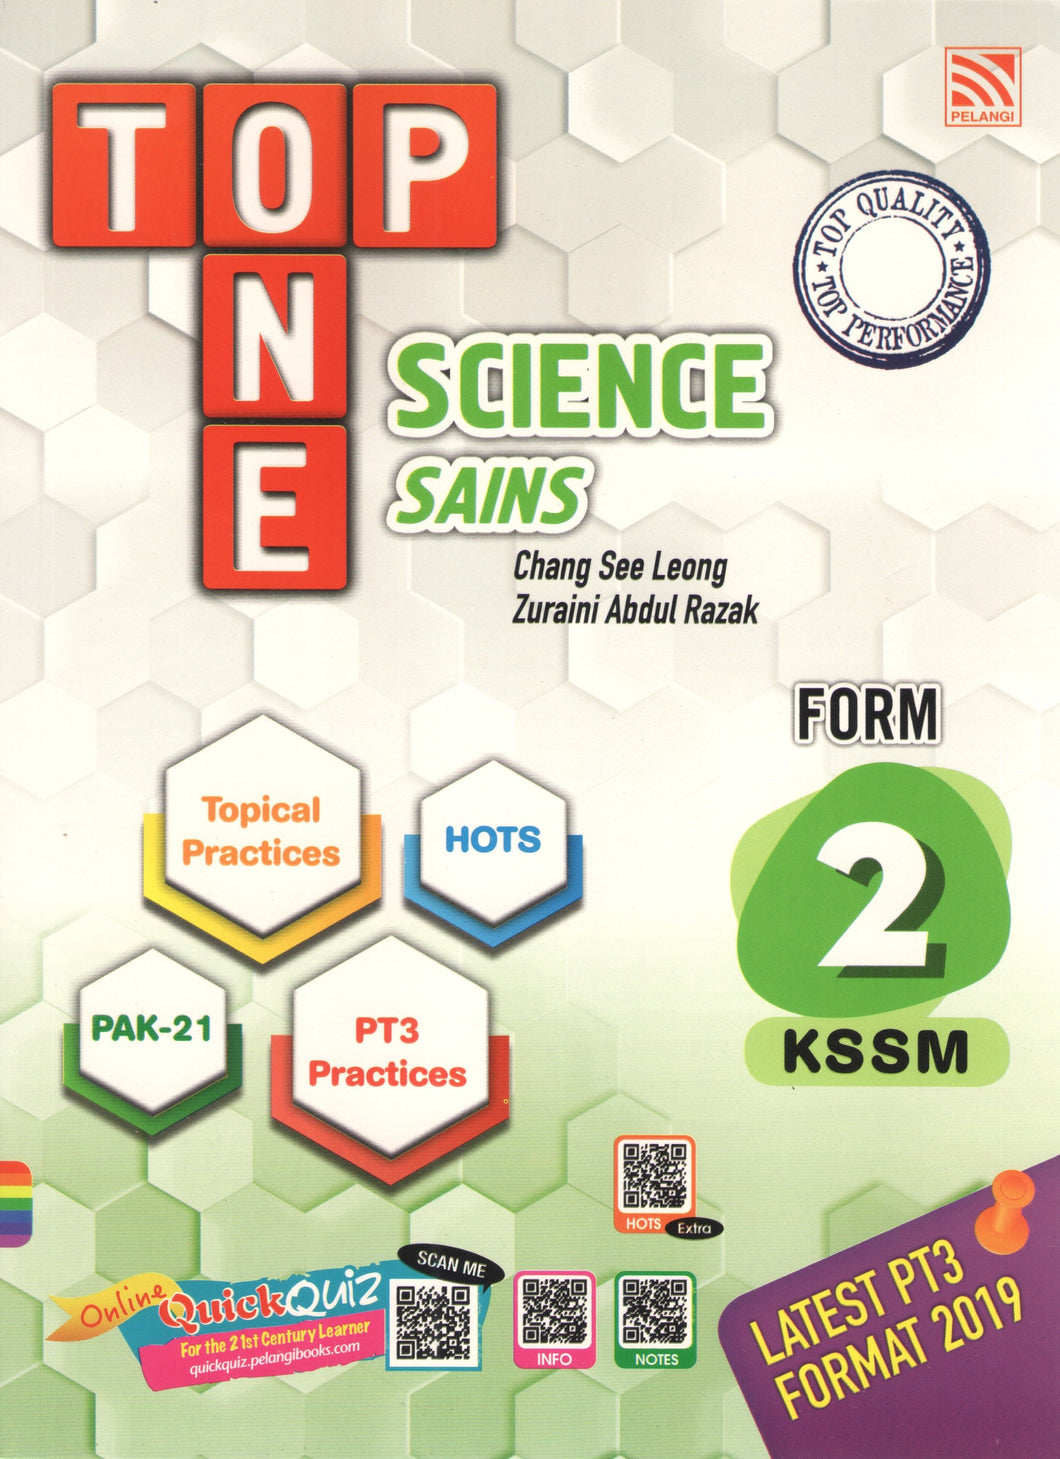 Pelangi 2021: Top One Sains / Science Dwibahasa Tingkatan / Form 2